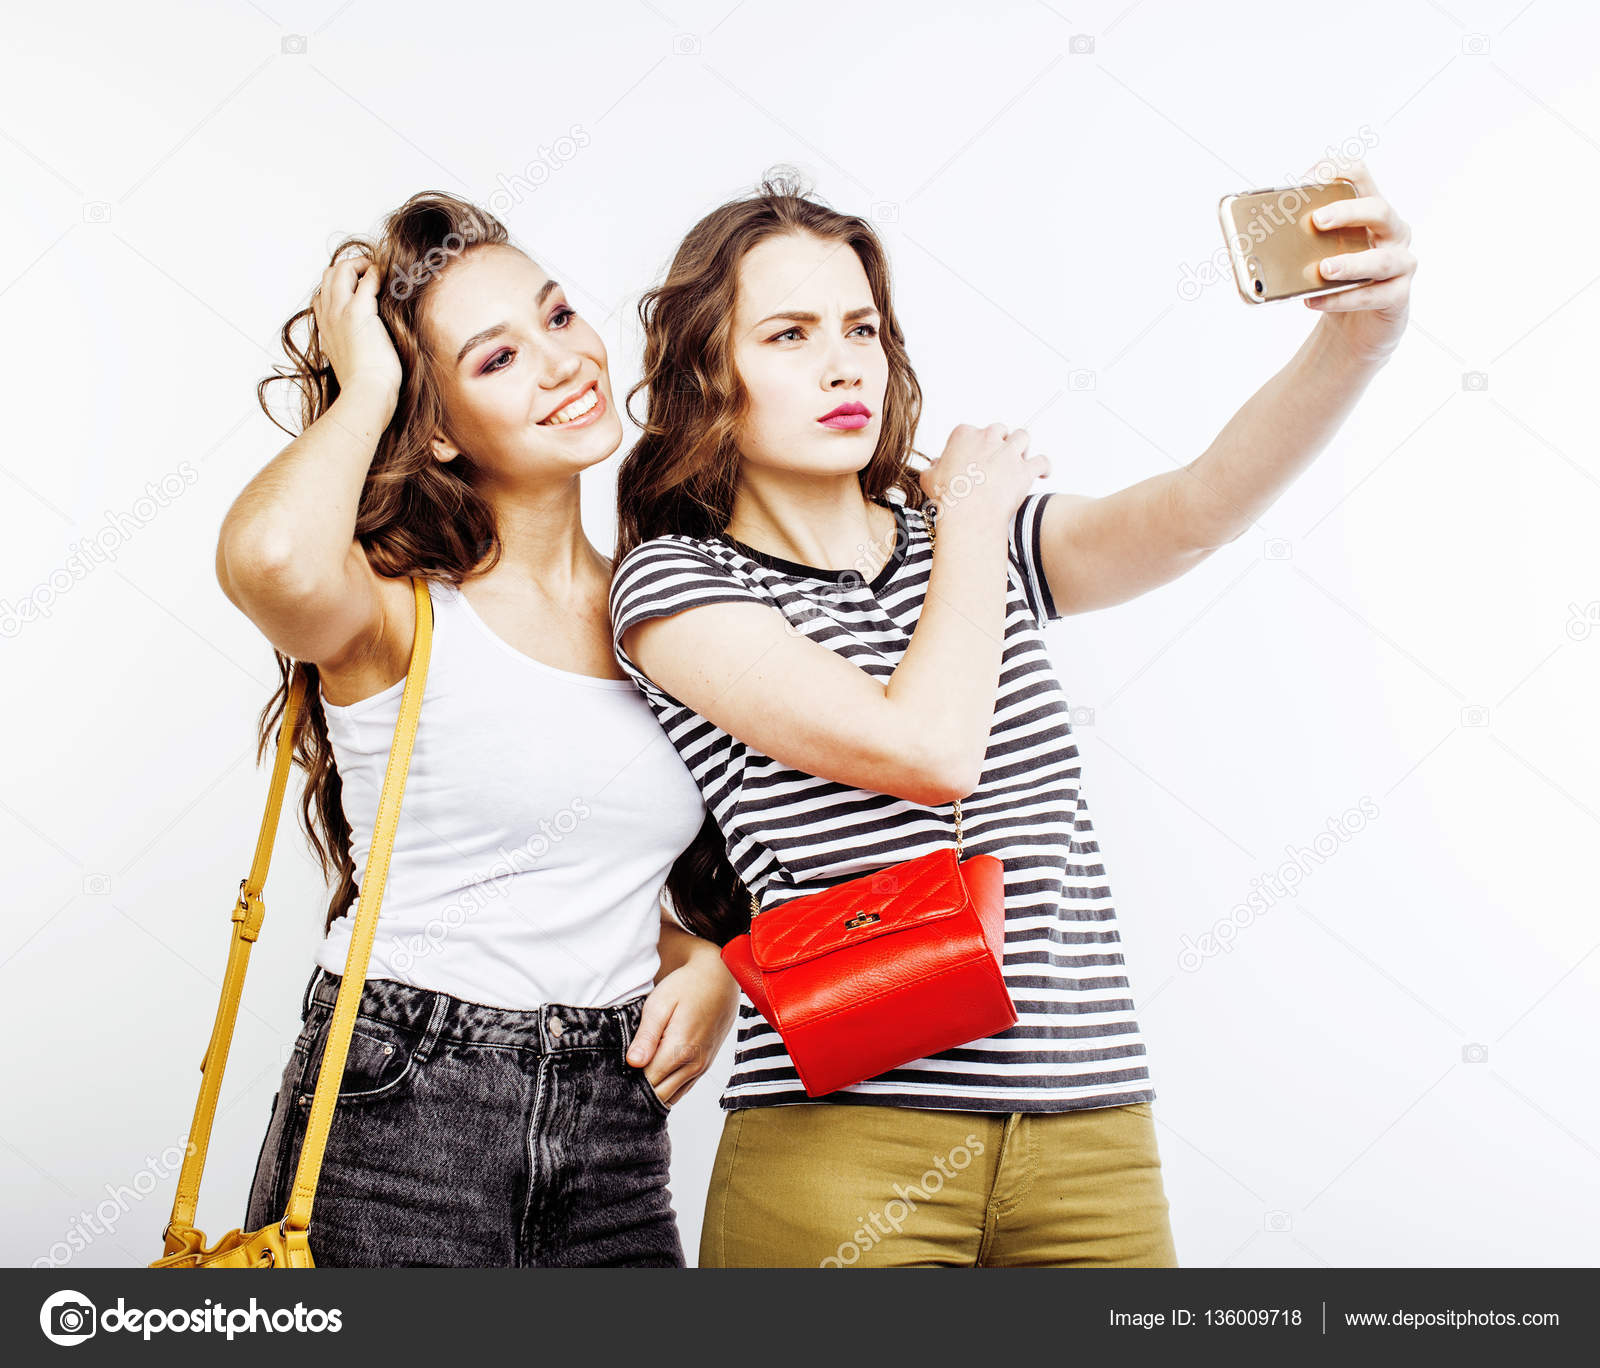 depositphotos_136009718-stock-photo-two-best-friends-teenage-girls.jpg